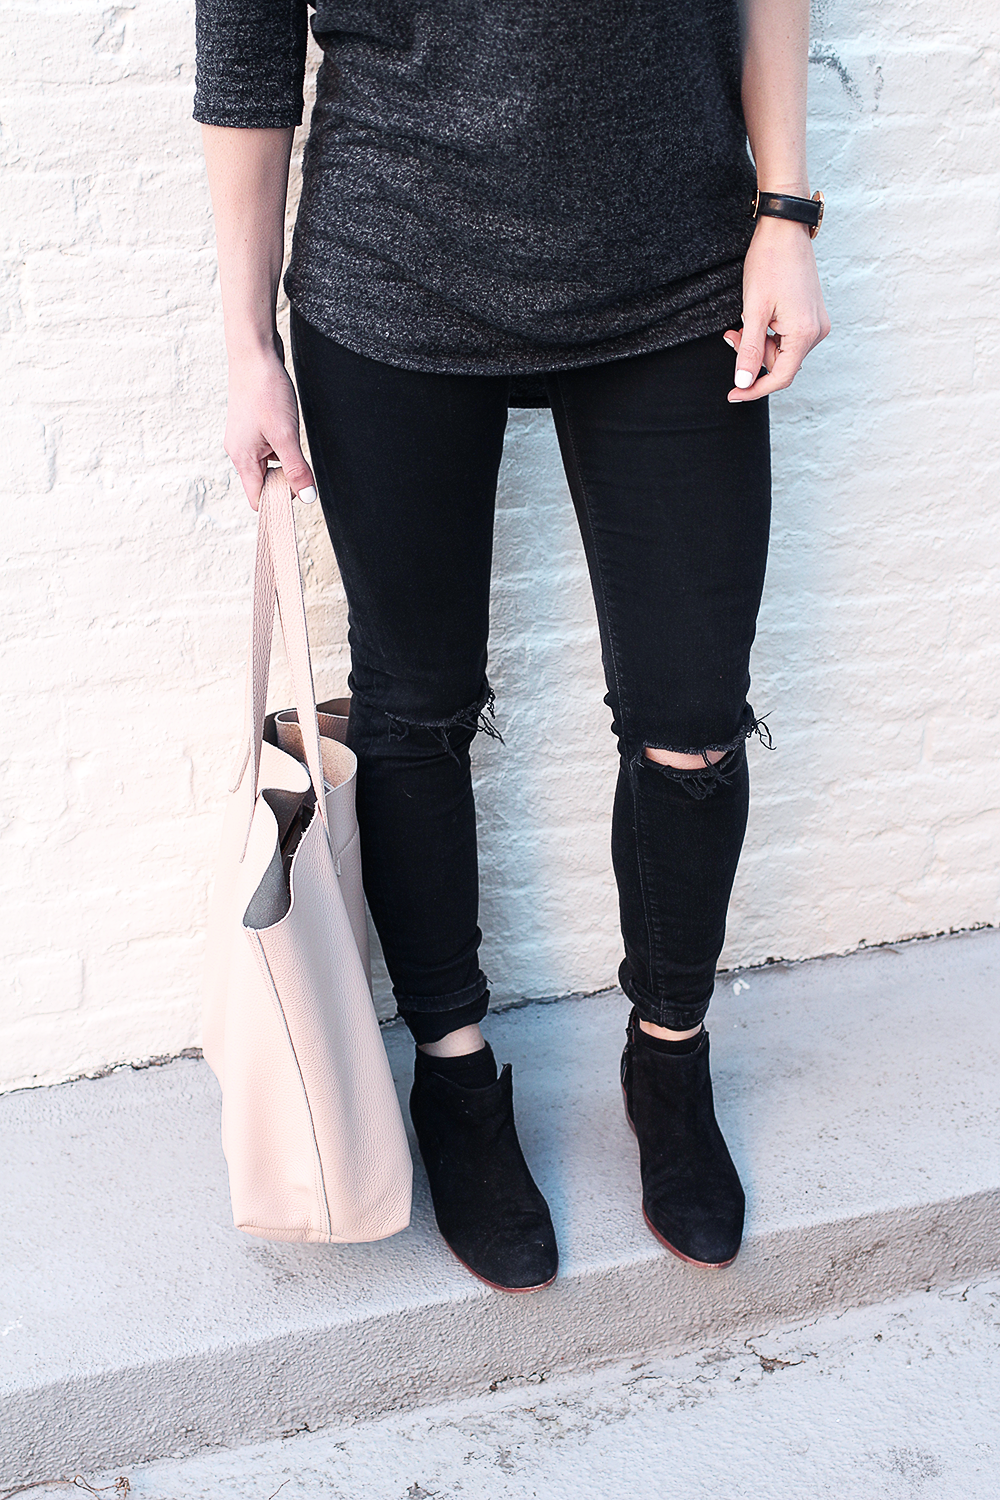 Ripped Denim, Black Booties, Blush Calvin Klein Bralette.png